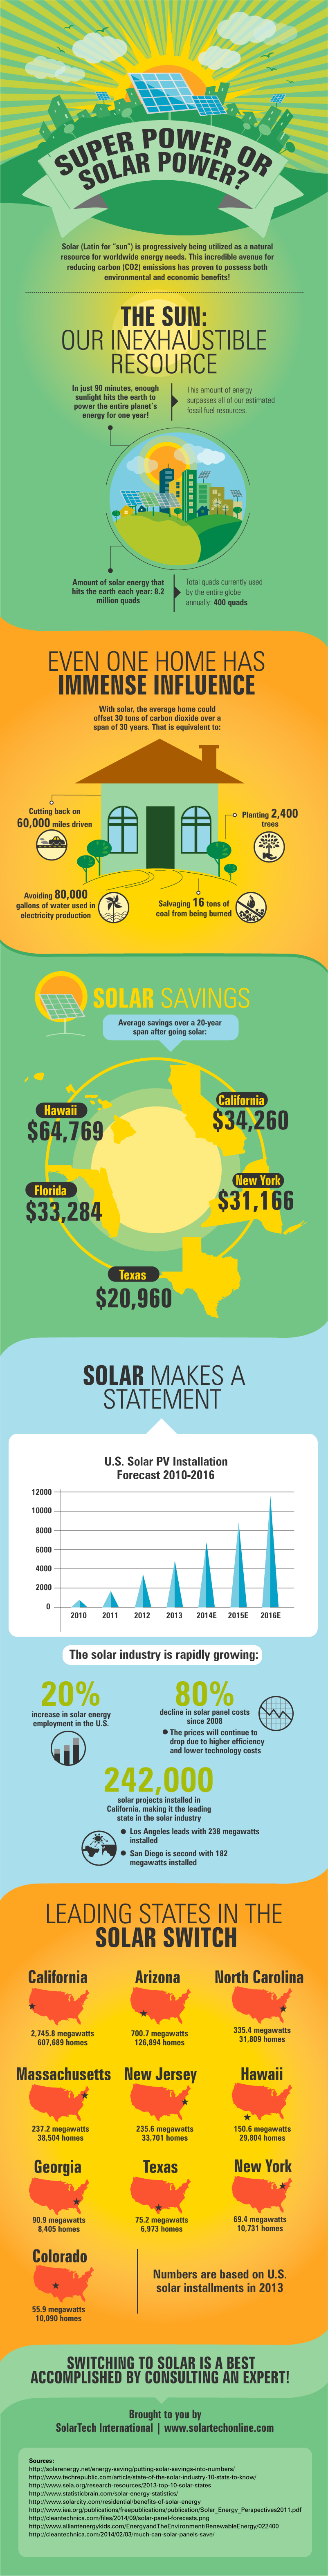 Super Power or Solar Power Infographic